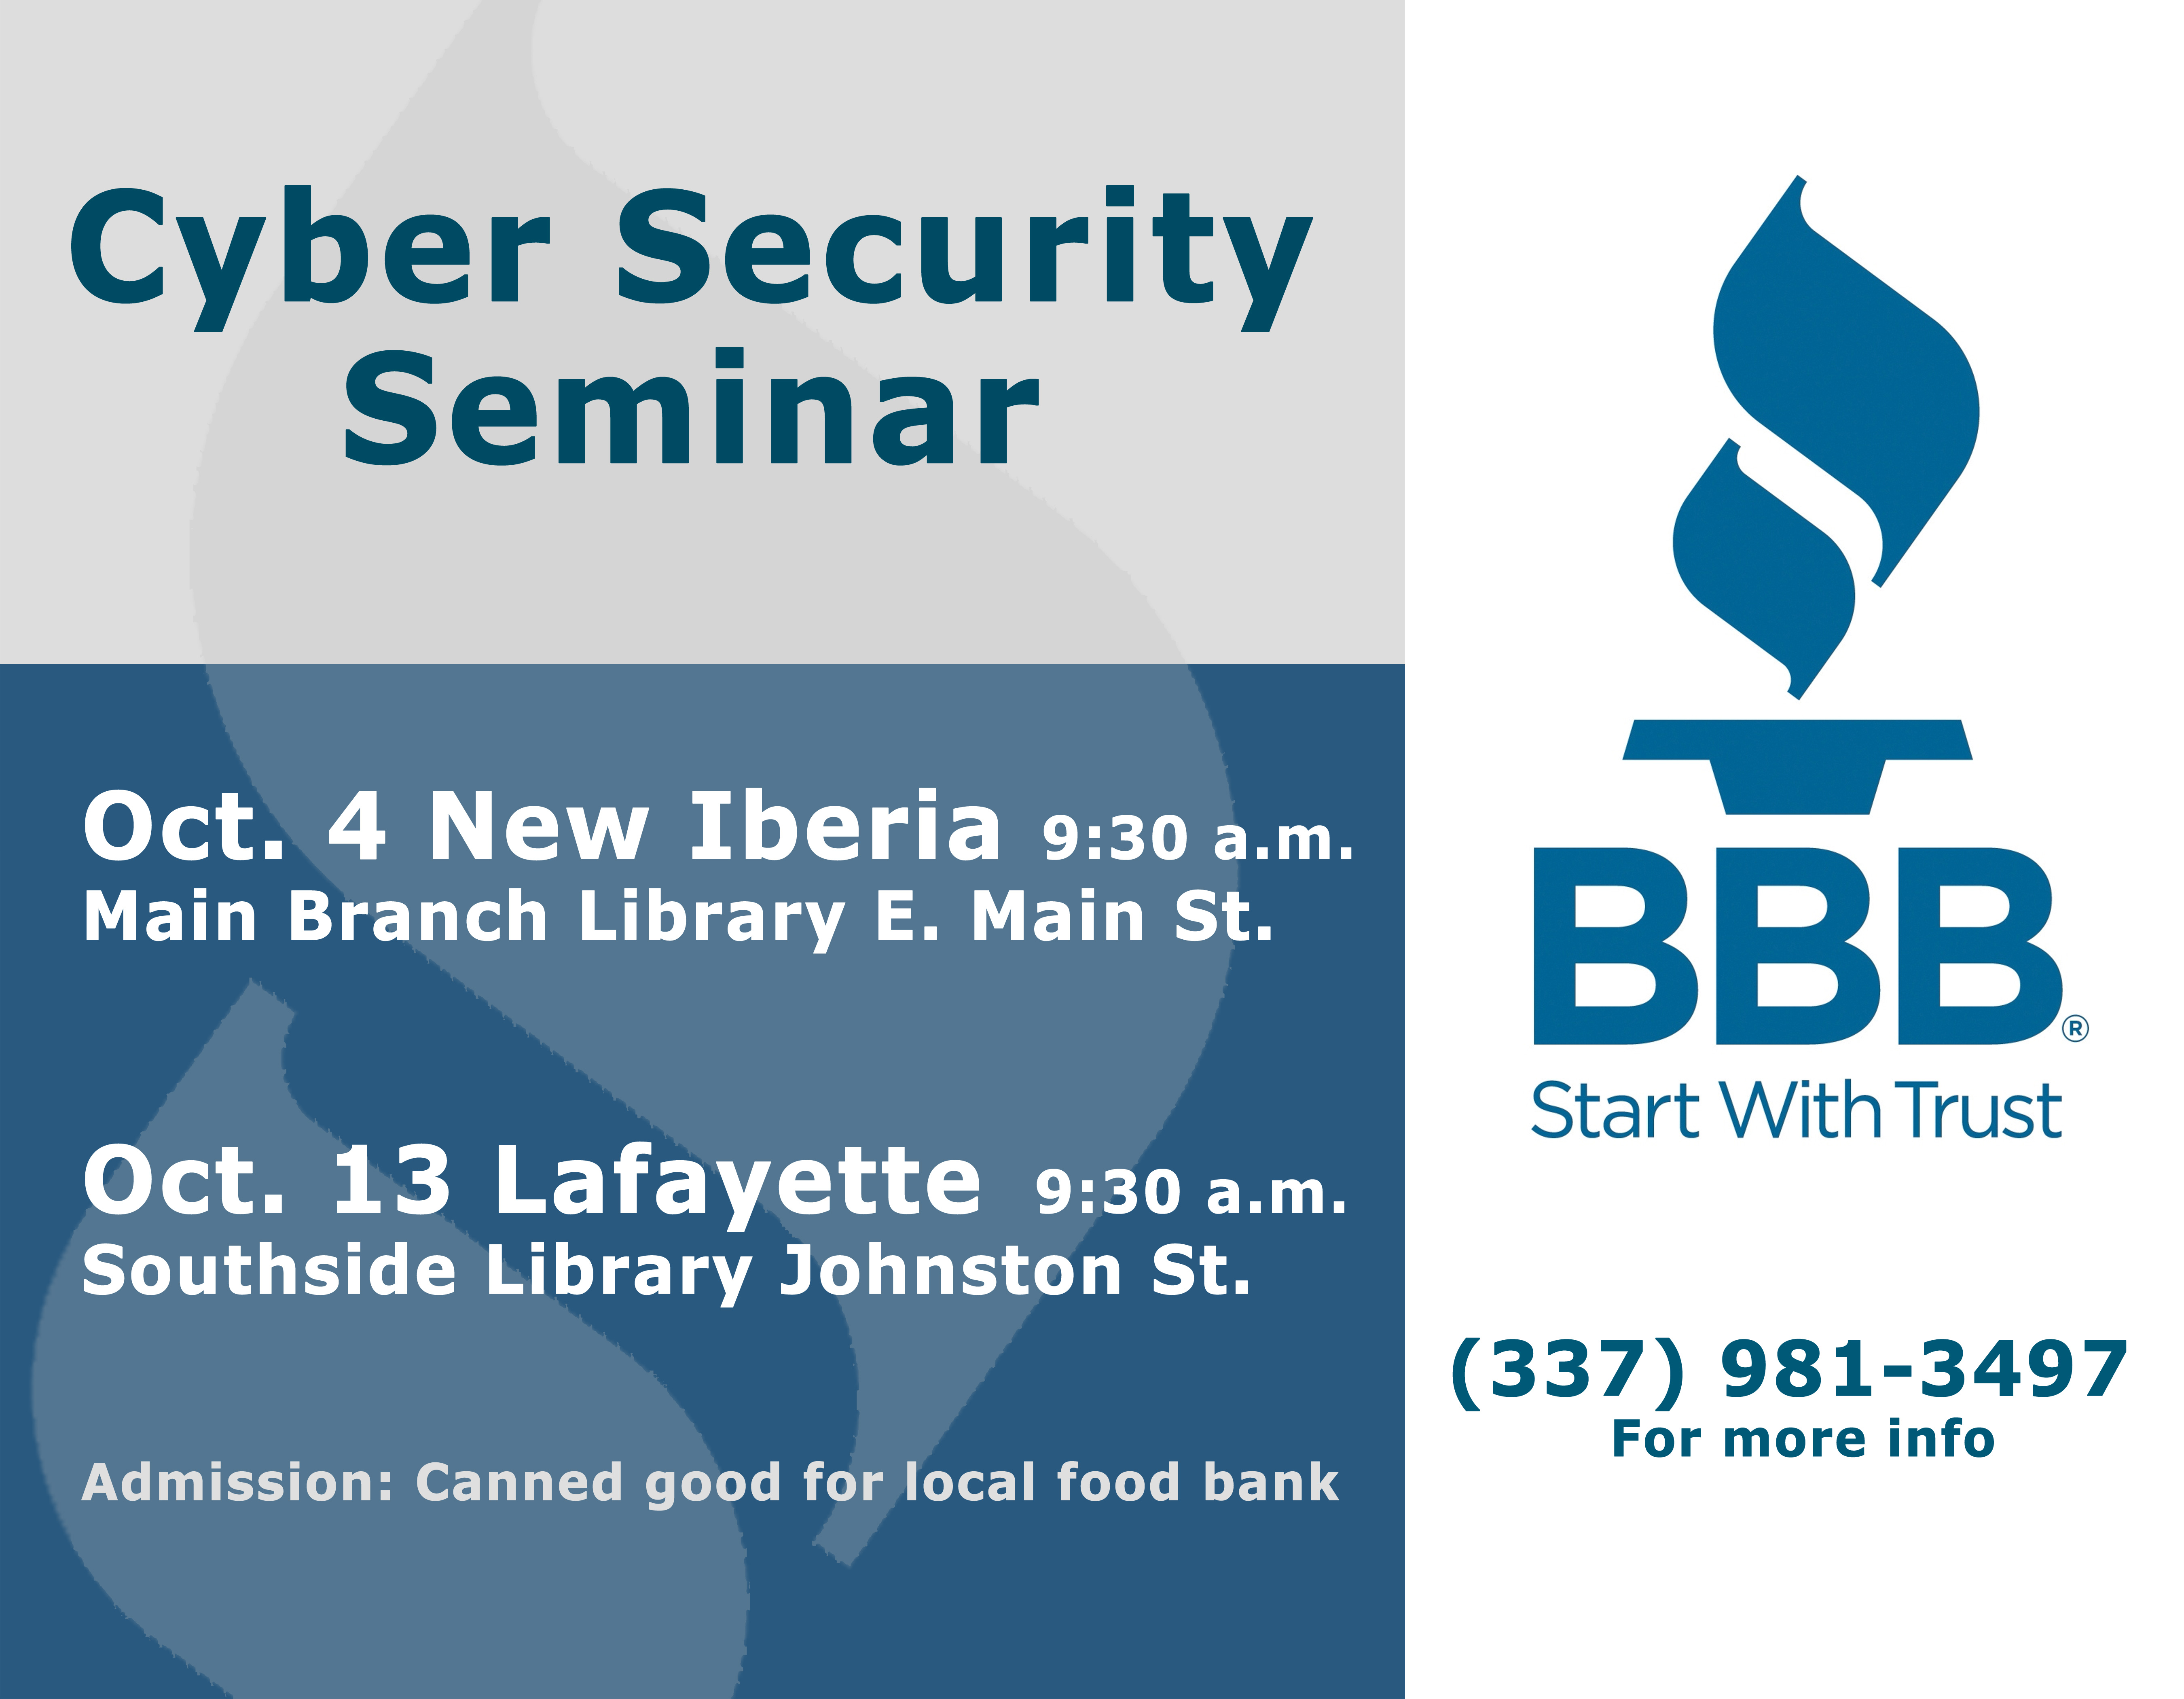 BBB Cyber Security